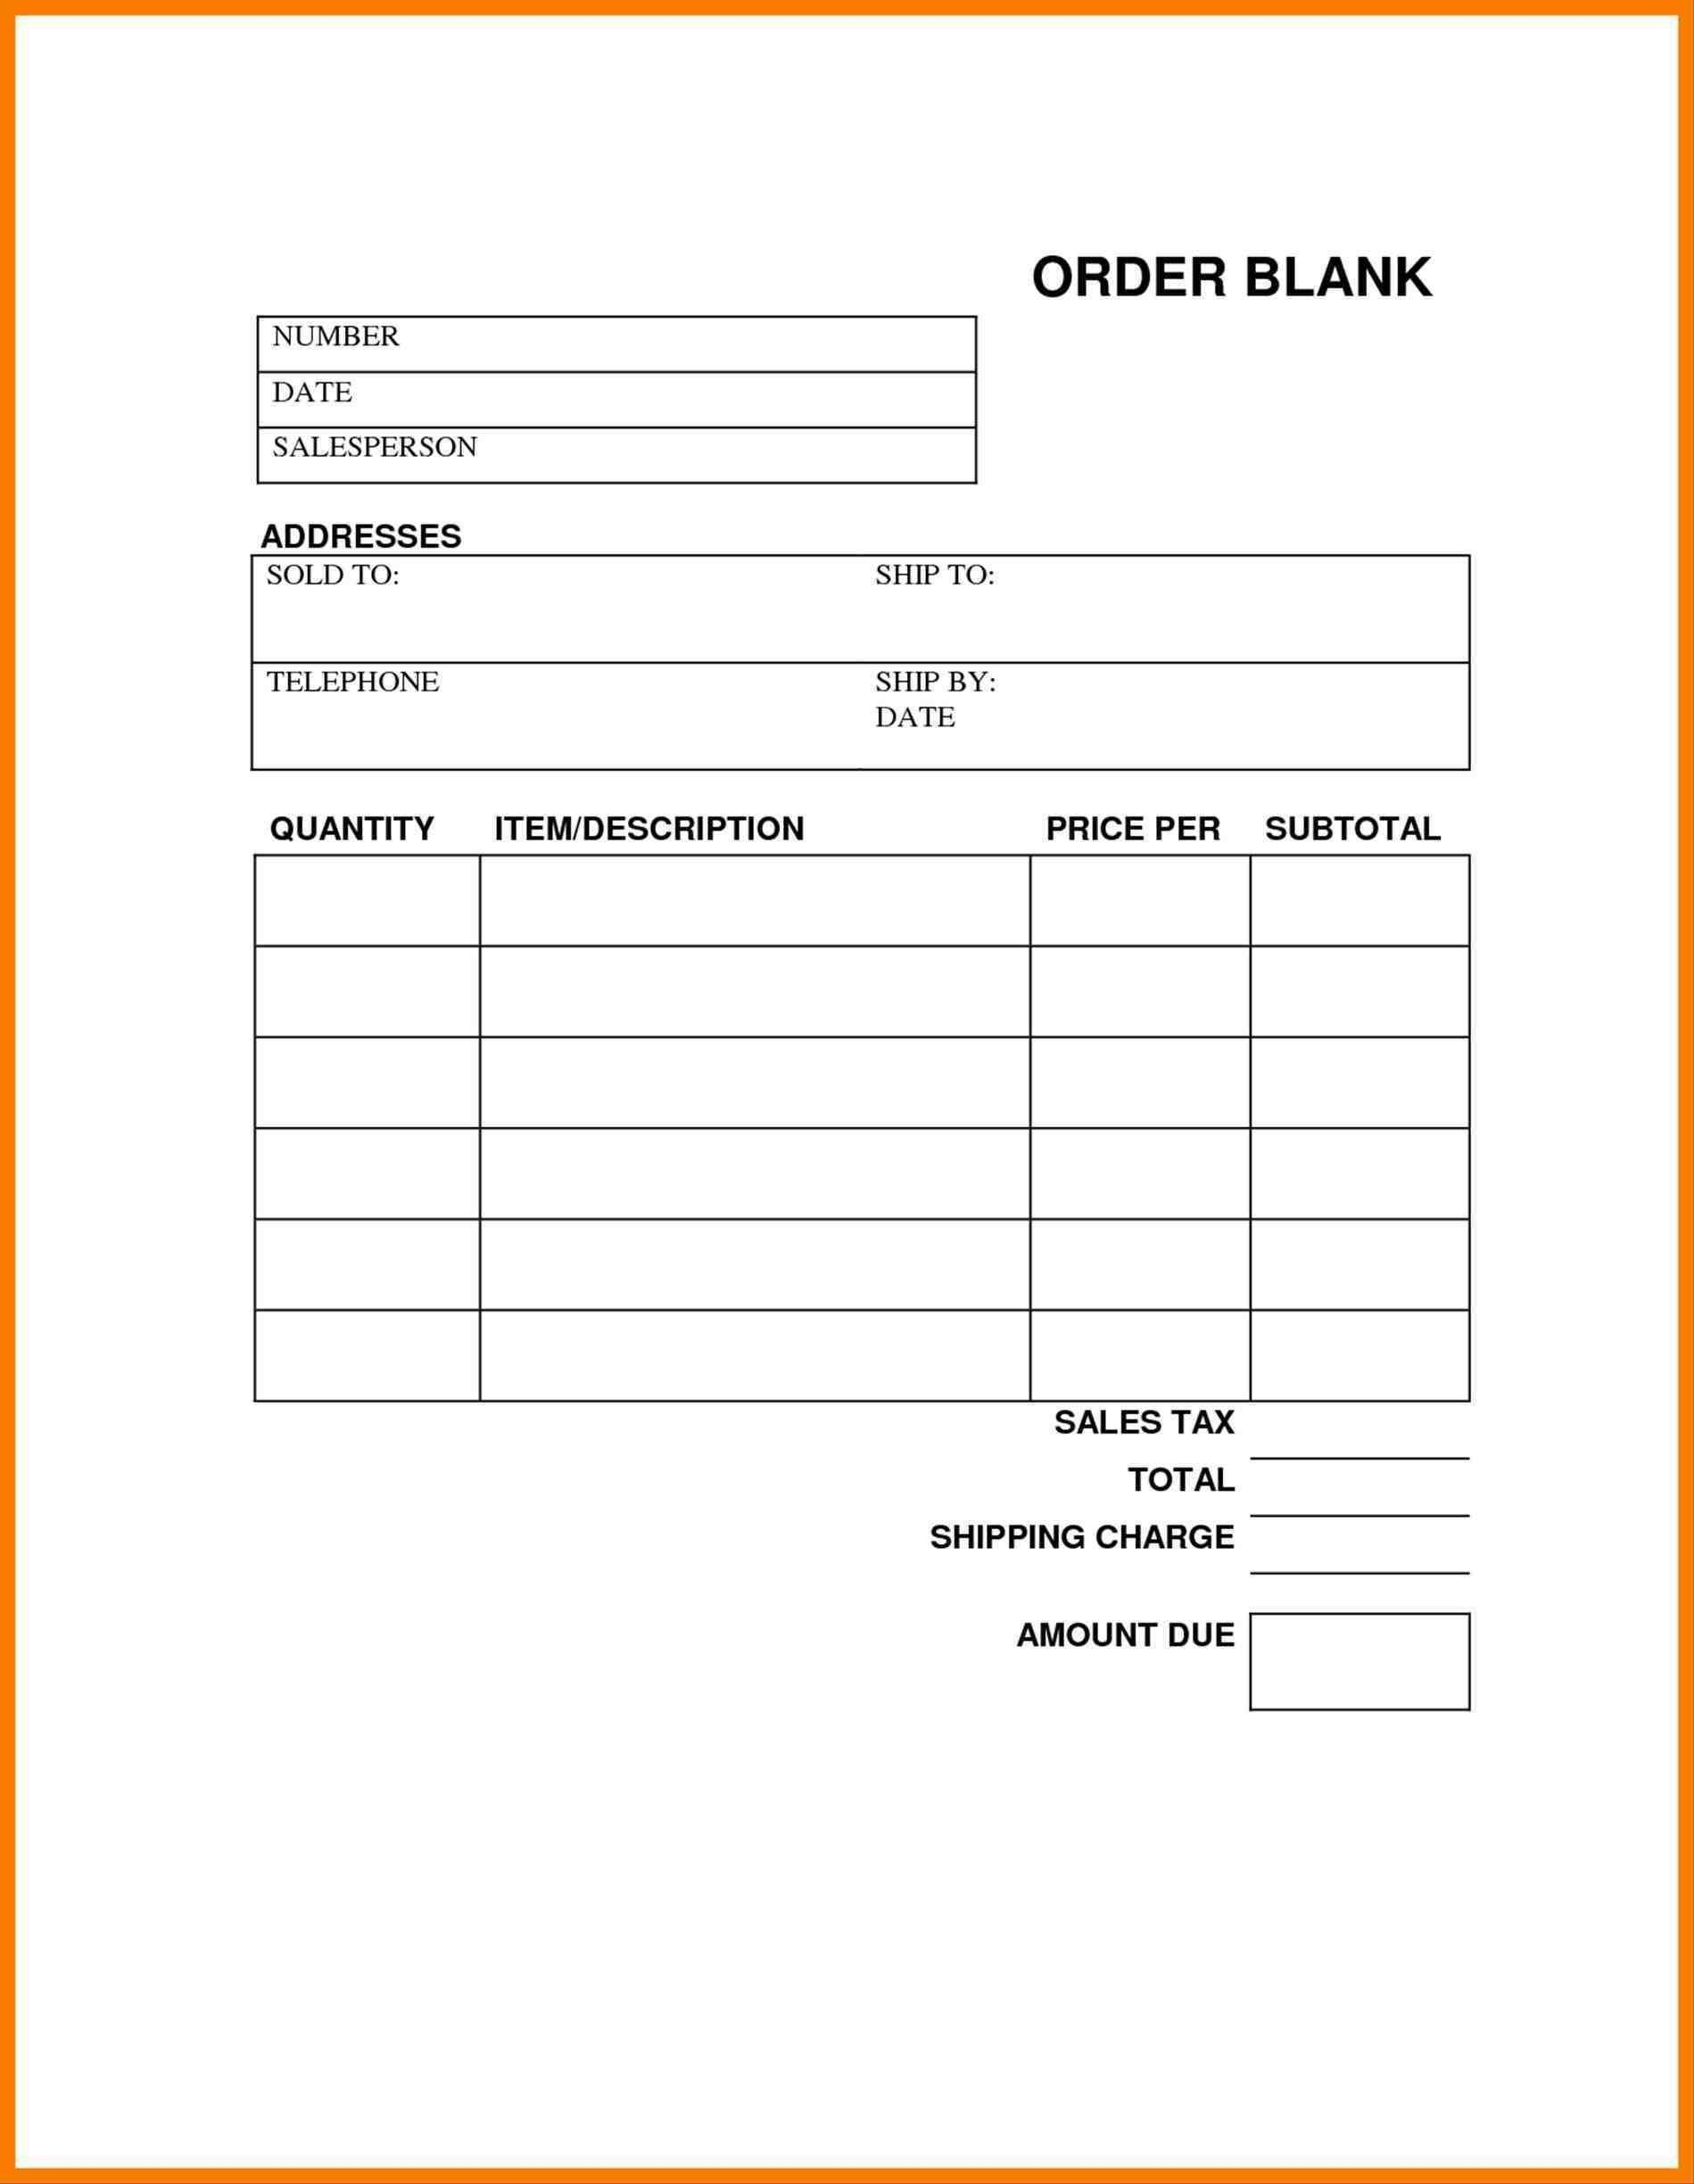 Blank Order Forms Templates Free | Free Tamplate | Order Form - Free Printable Blank Receipt Form